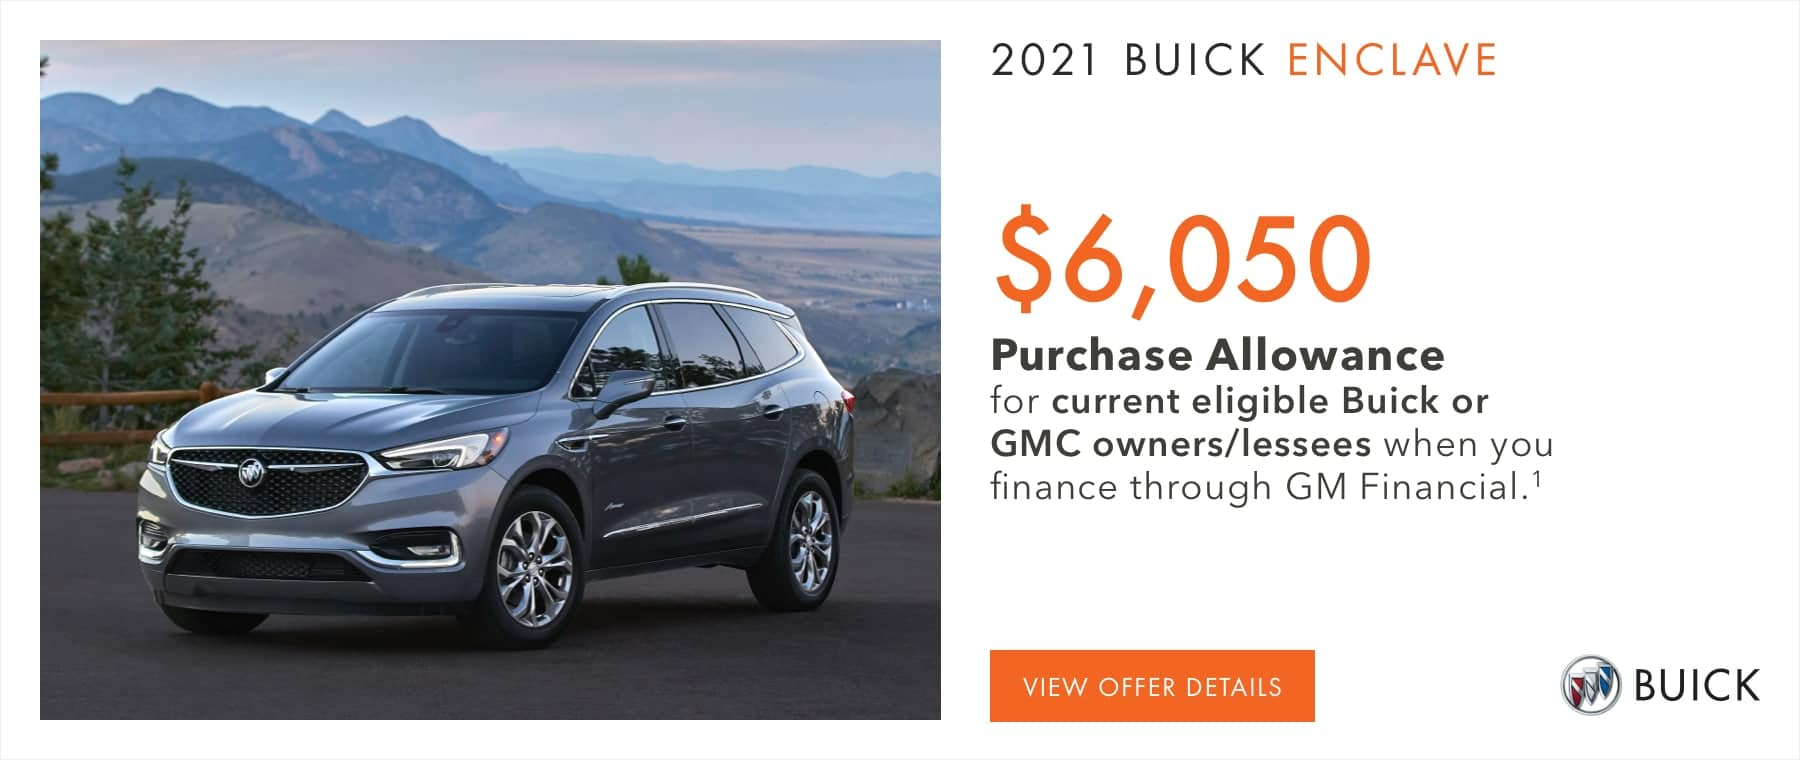 $6,050 Purchase Allowance for current eligible Buick or GMC owners/lessees when you finance through GM Financial.1